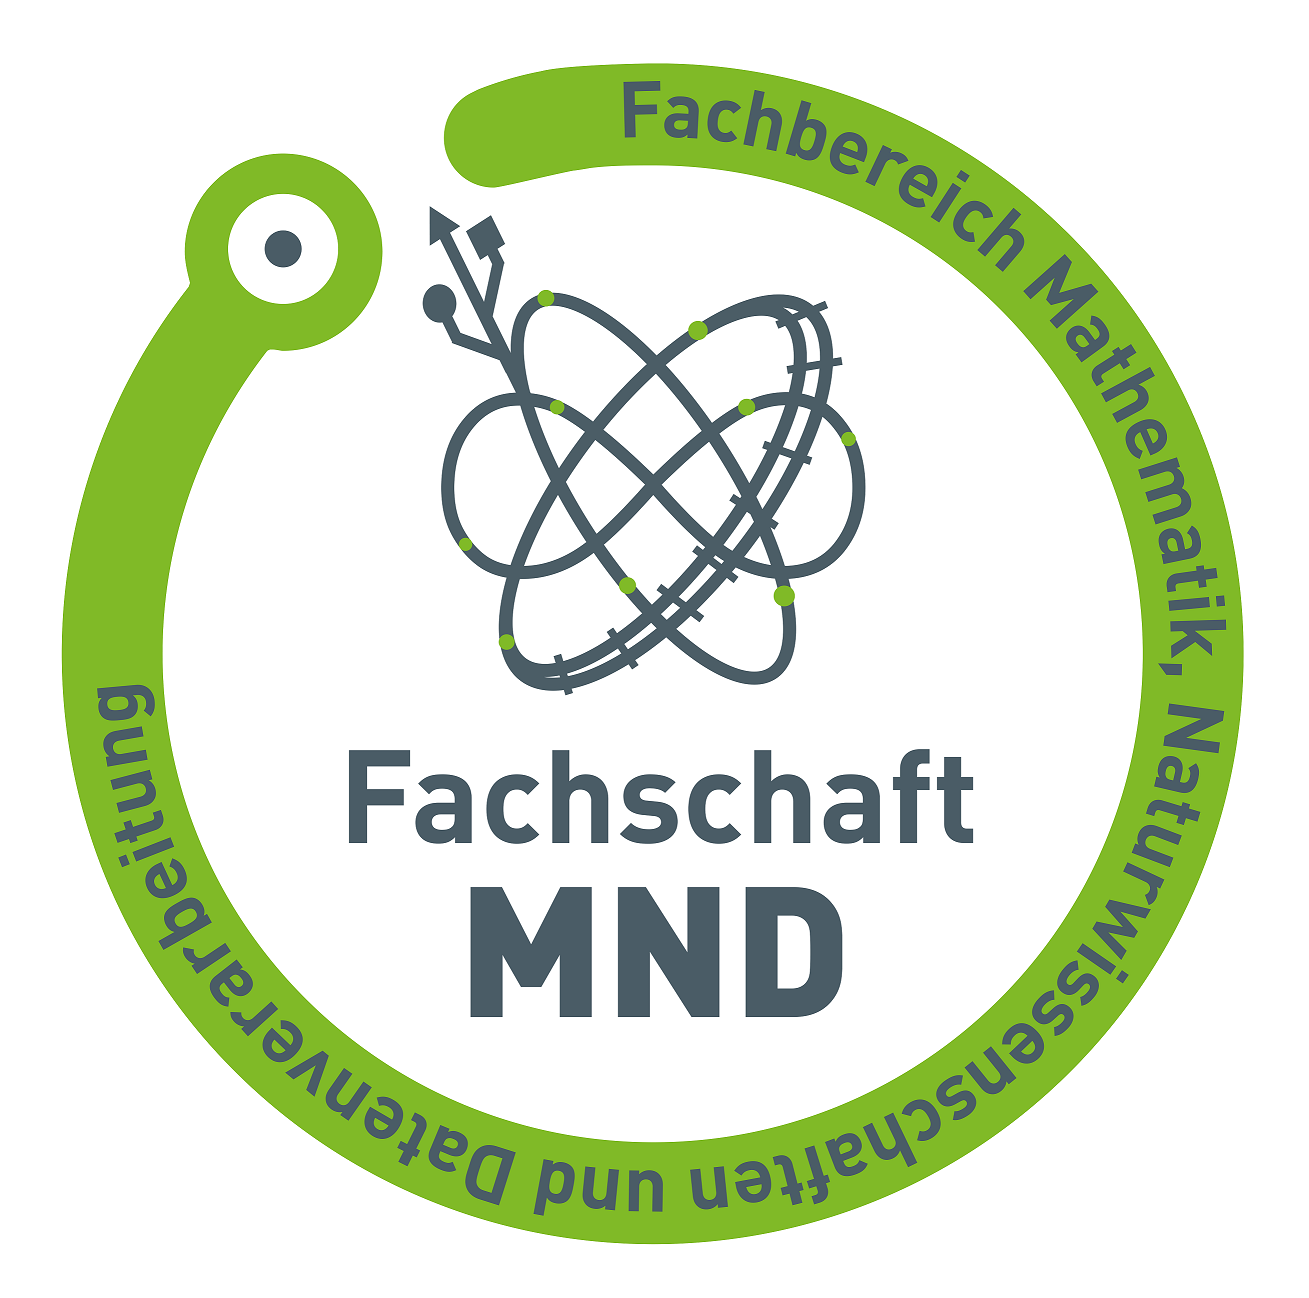 Fachschaft_MND_Logo_Normal-Transparent.png